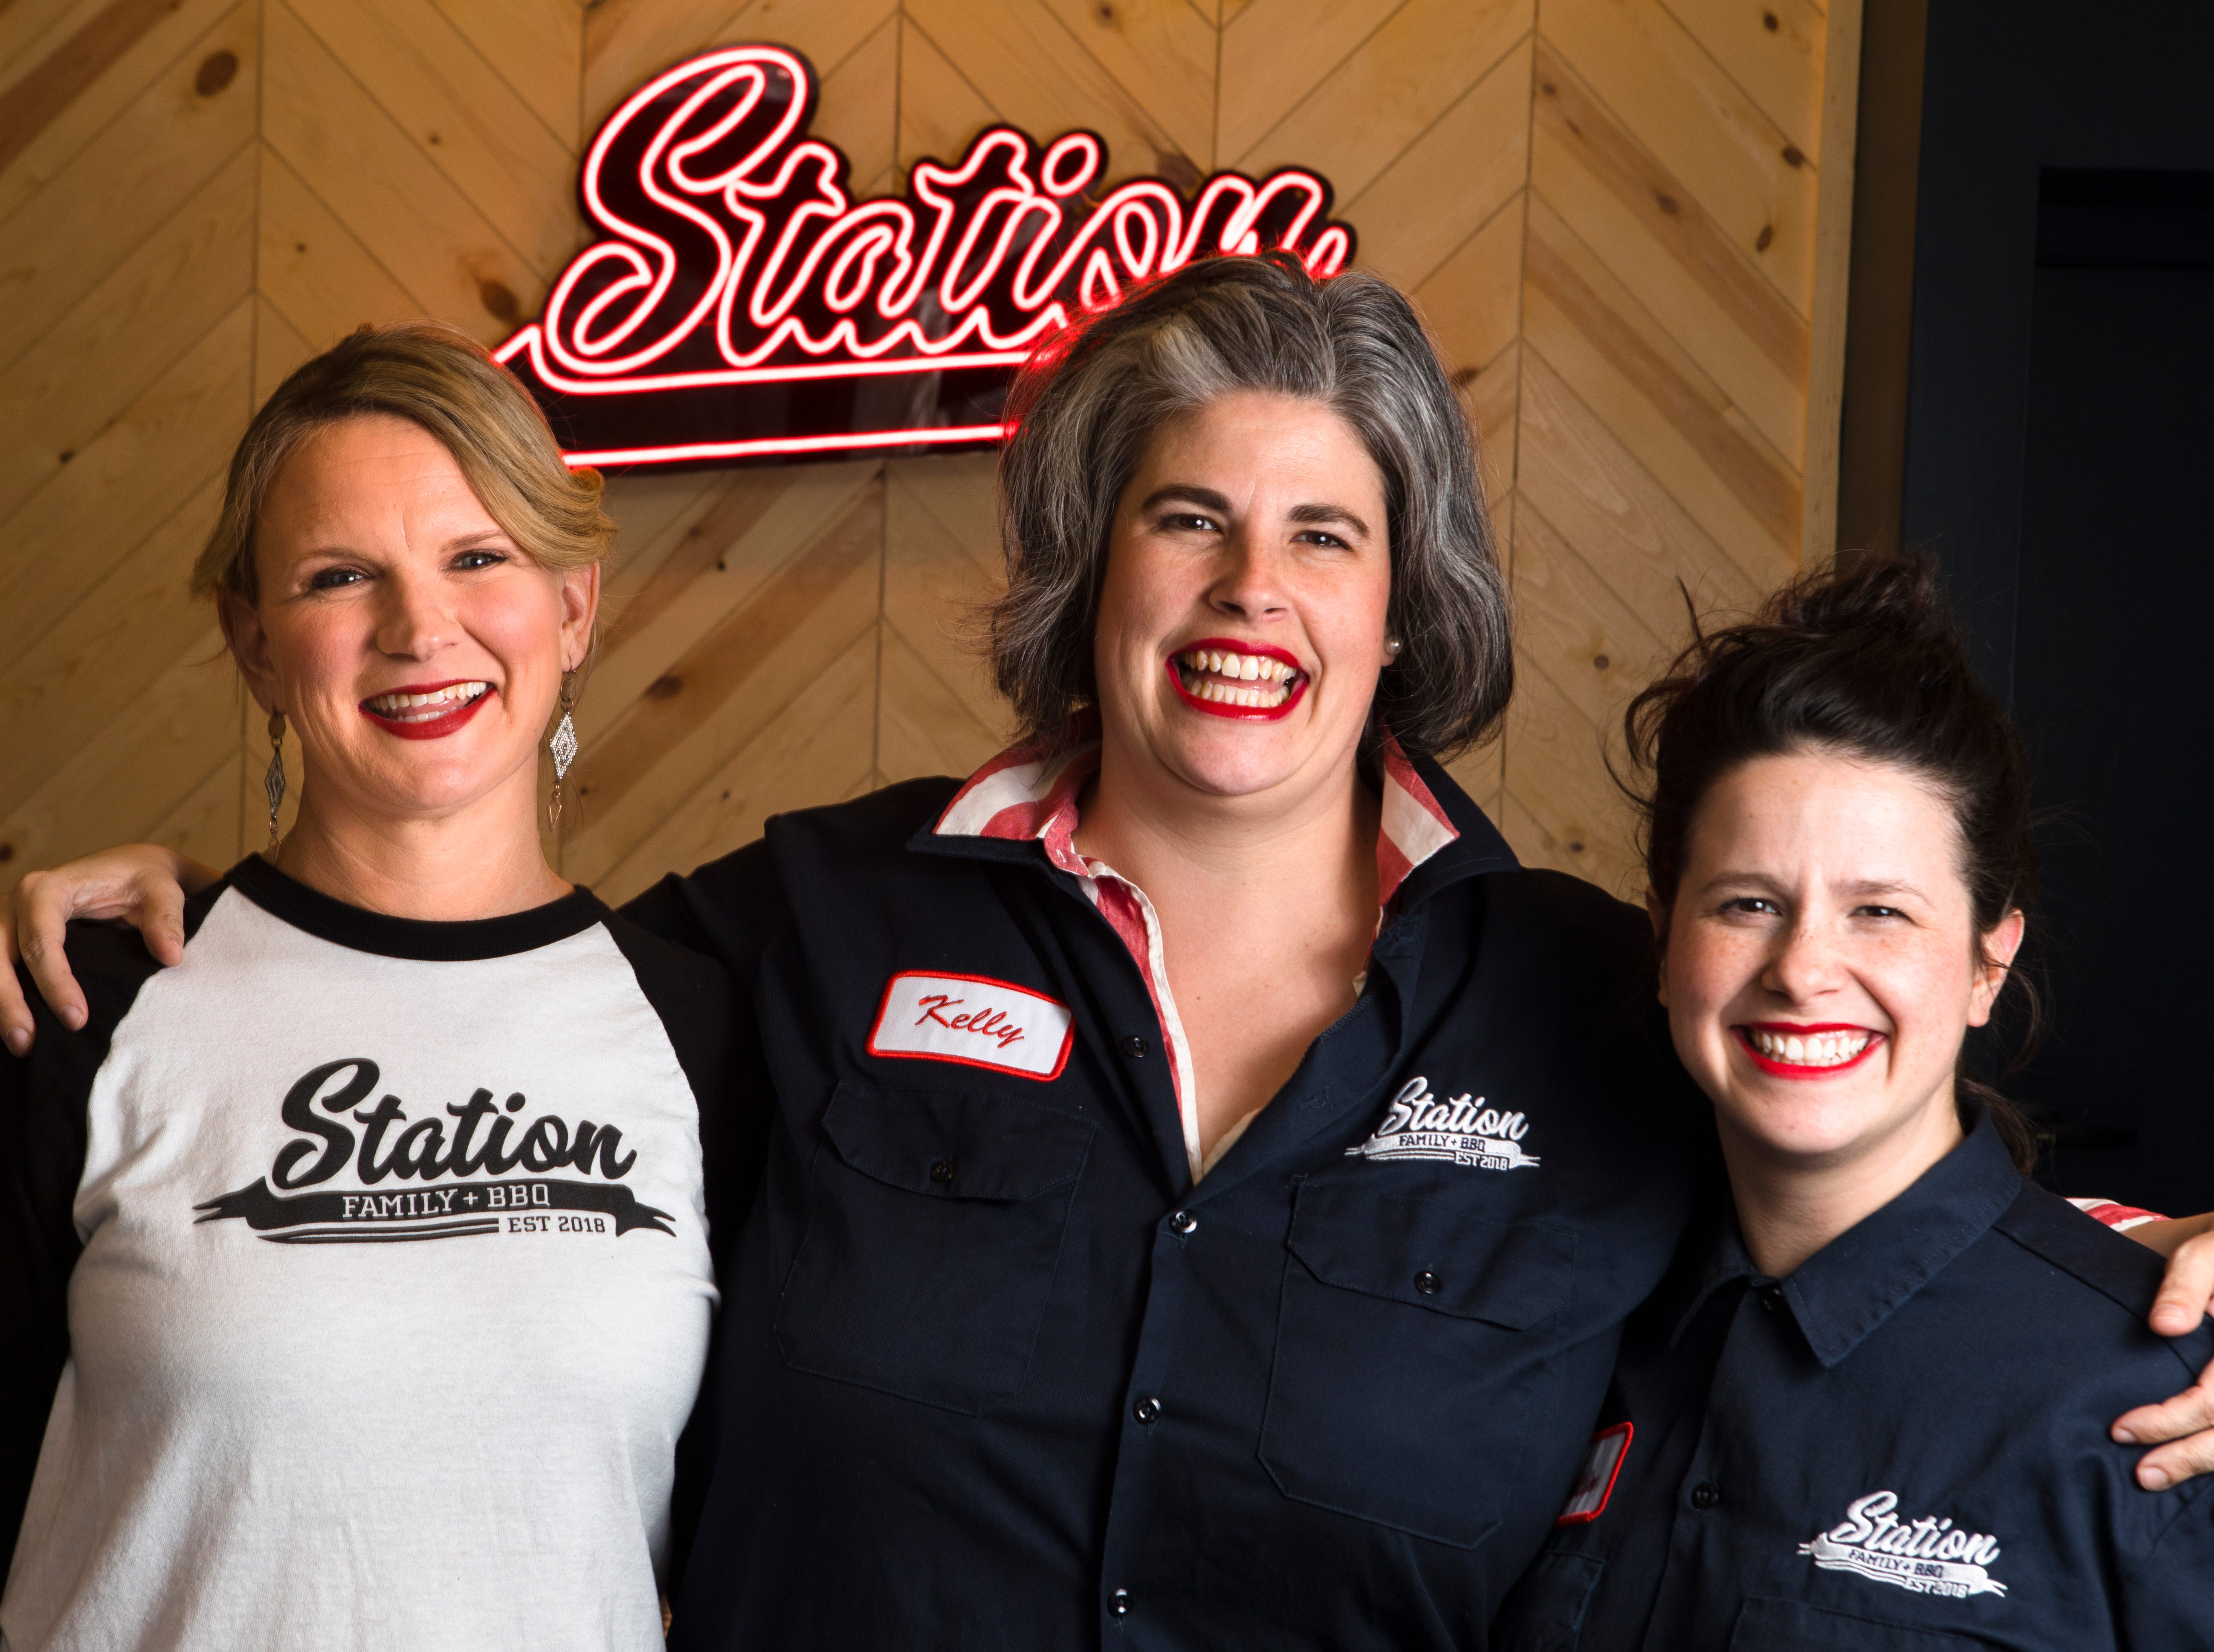 Owners of Station Family + BBQ, from left, Karen Klaus, Kelly Trush and Chef Caitlin Steininger stand inside the restaurant in Wyoming on Friday, Feb. 22, 2019.